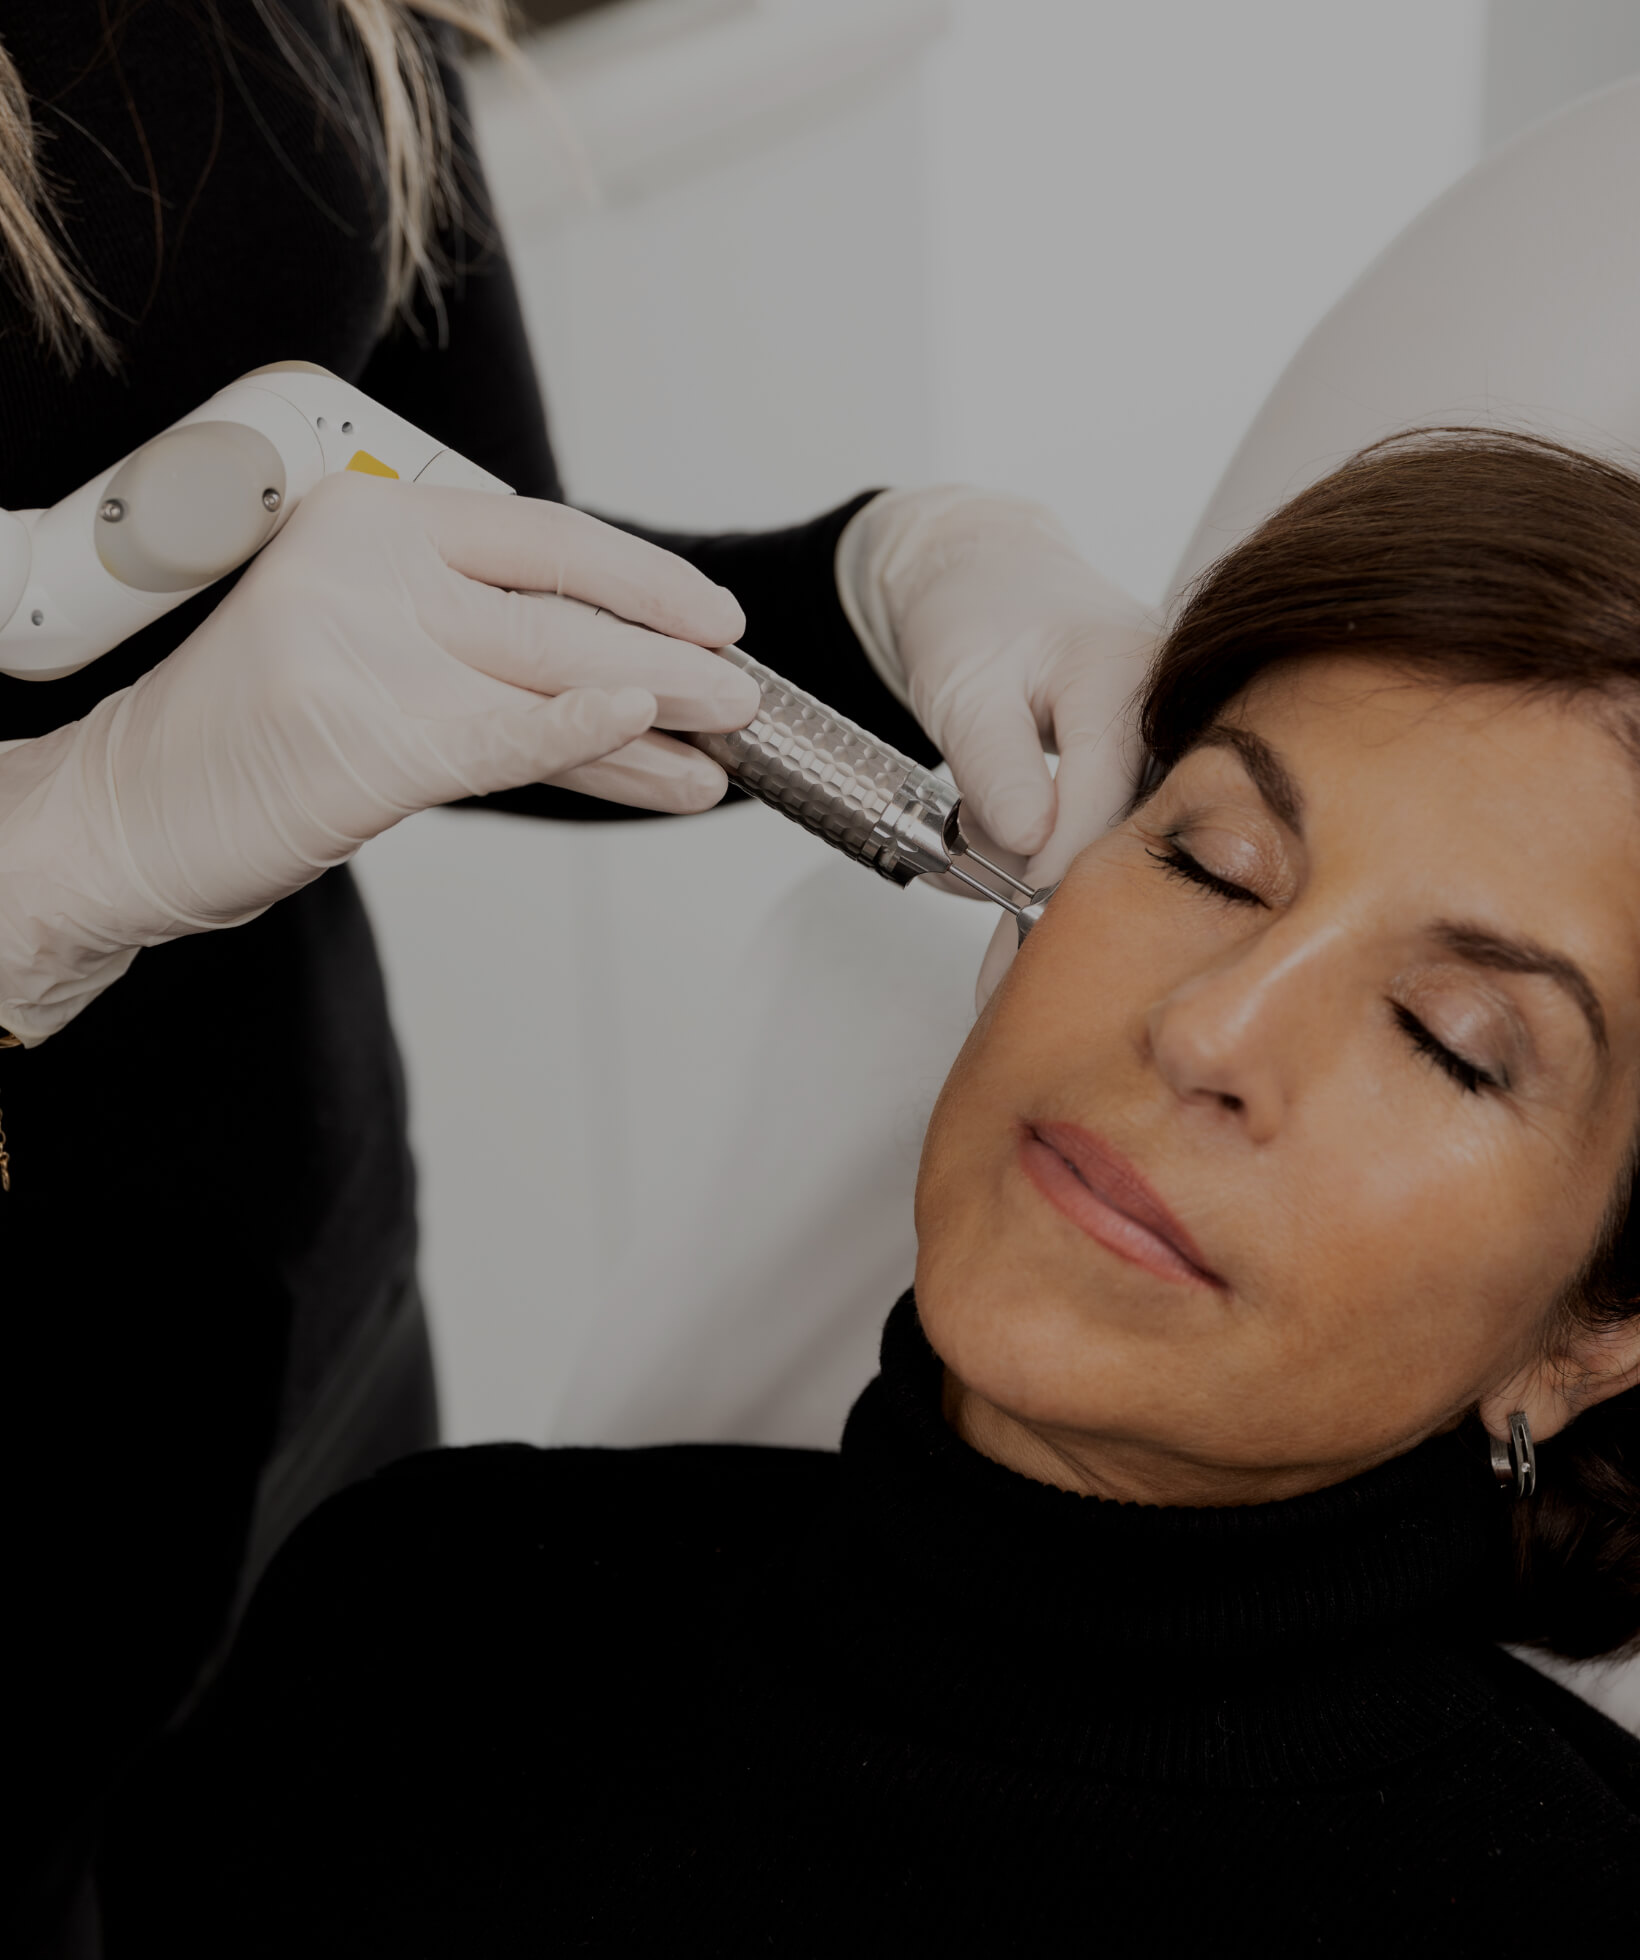 A medico-aesthetic technician from Clinique Chloé treating the face of a patient with the fractional laser